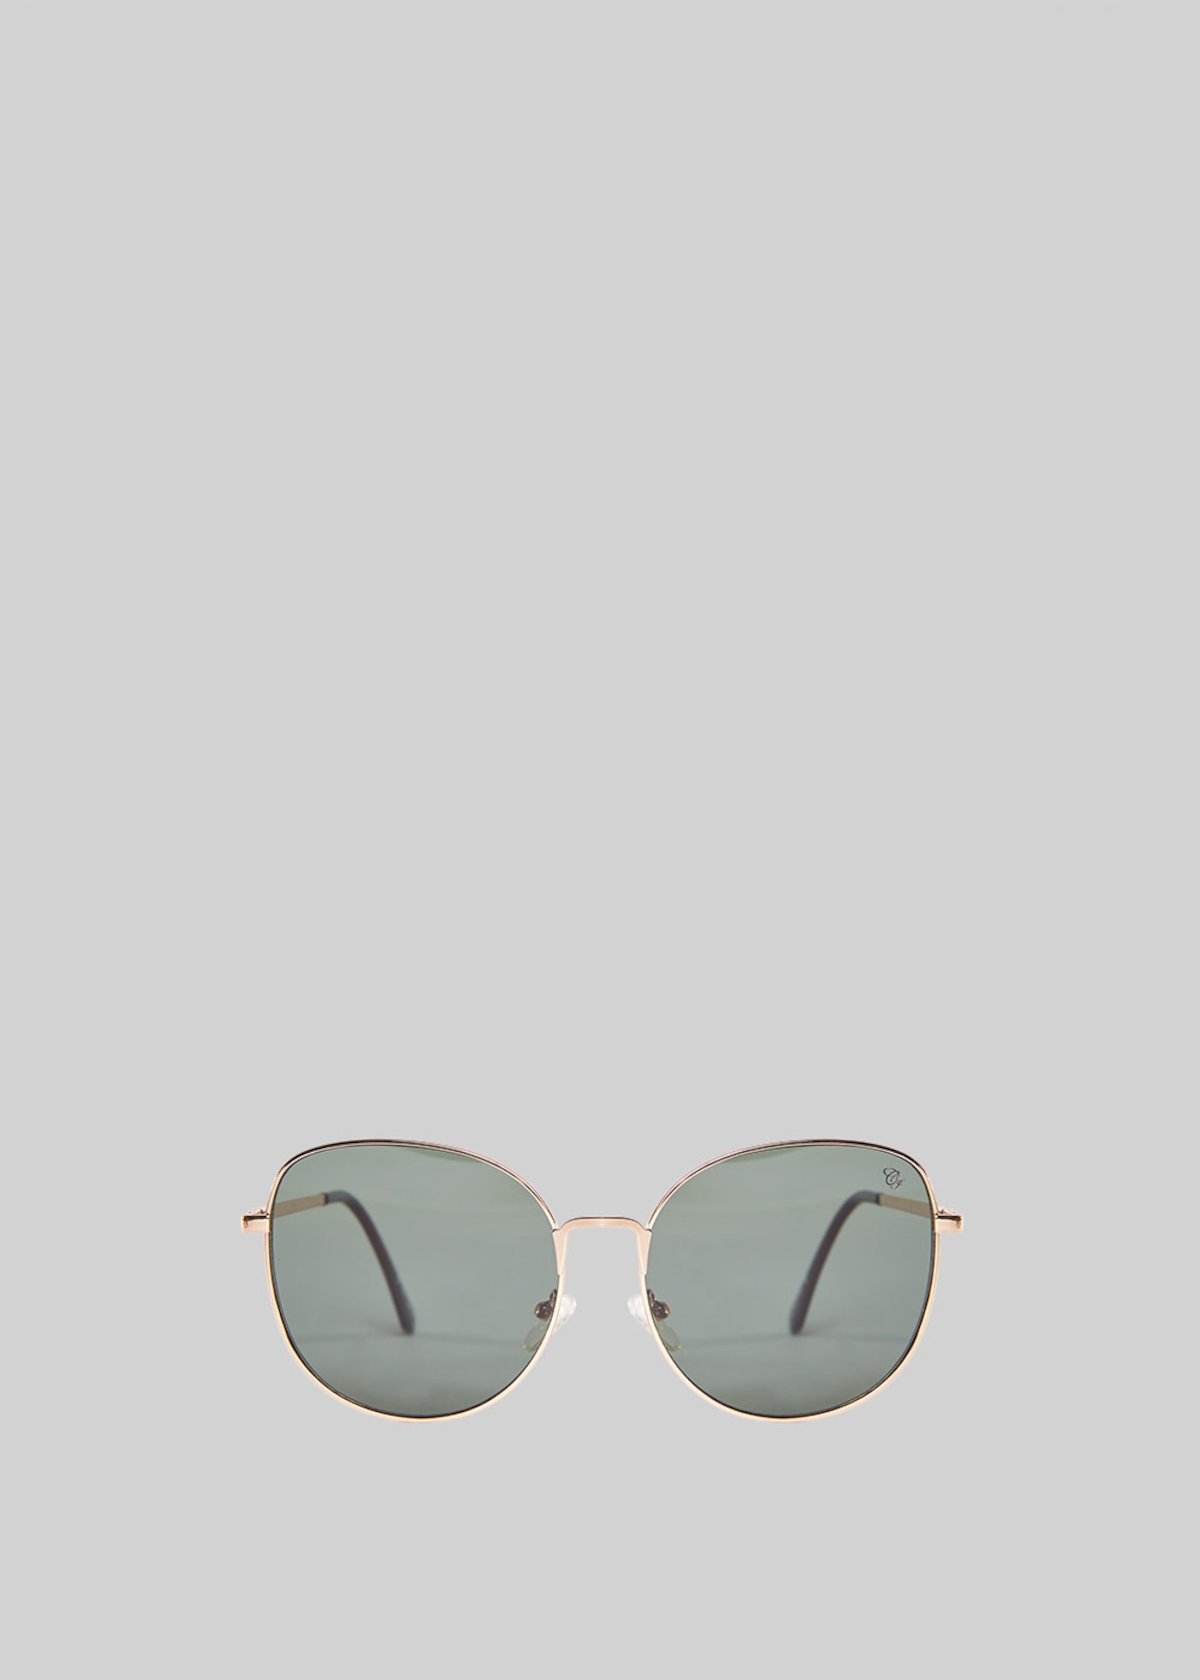 Sunglasses with light gold frame